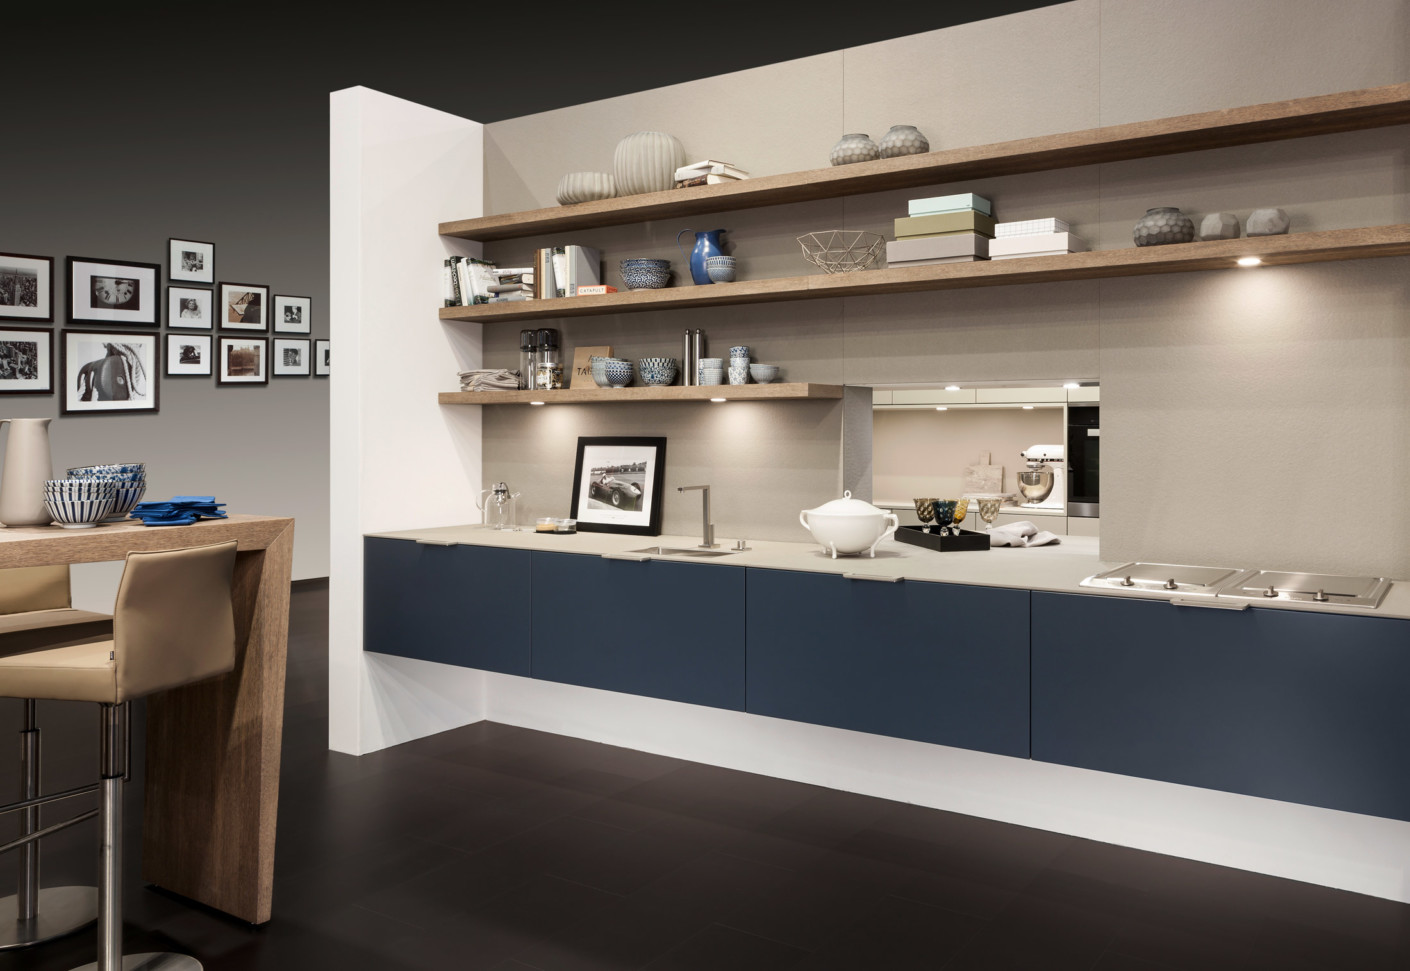 Livingkitchen Internationales Urbanes K Chendesign Von